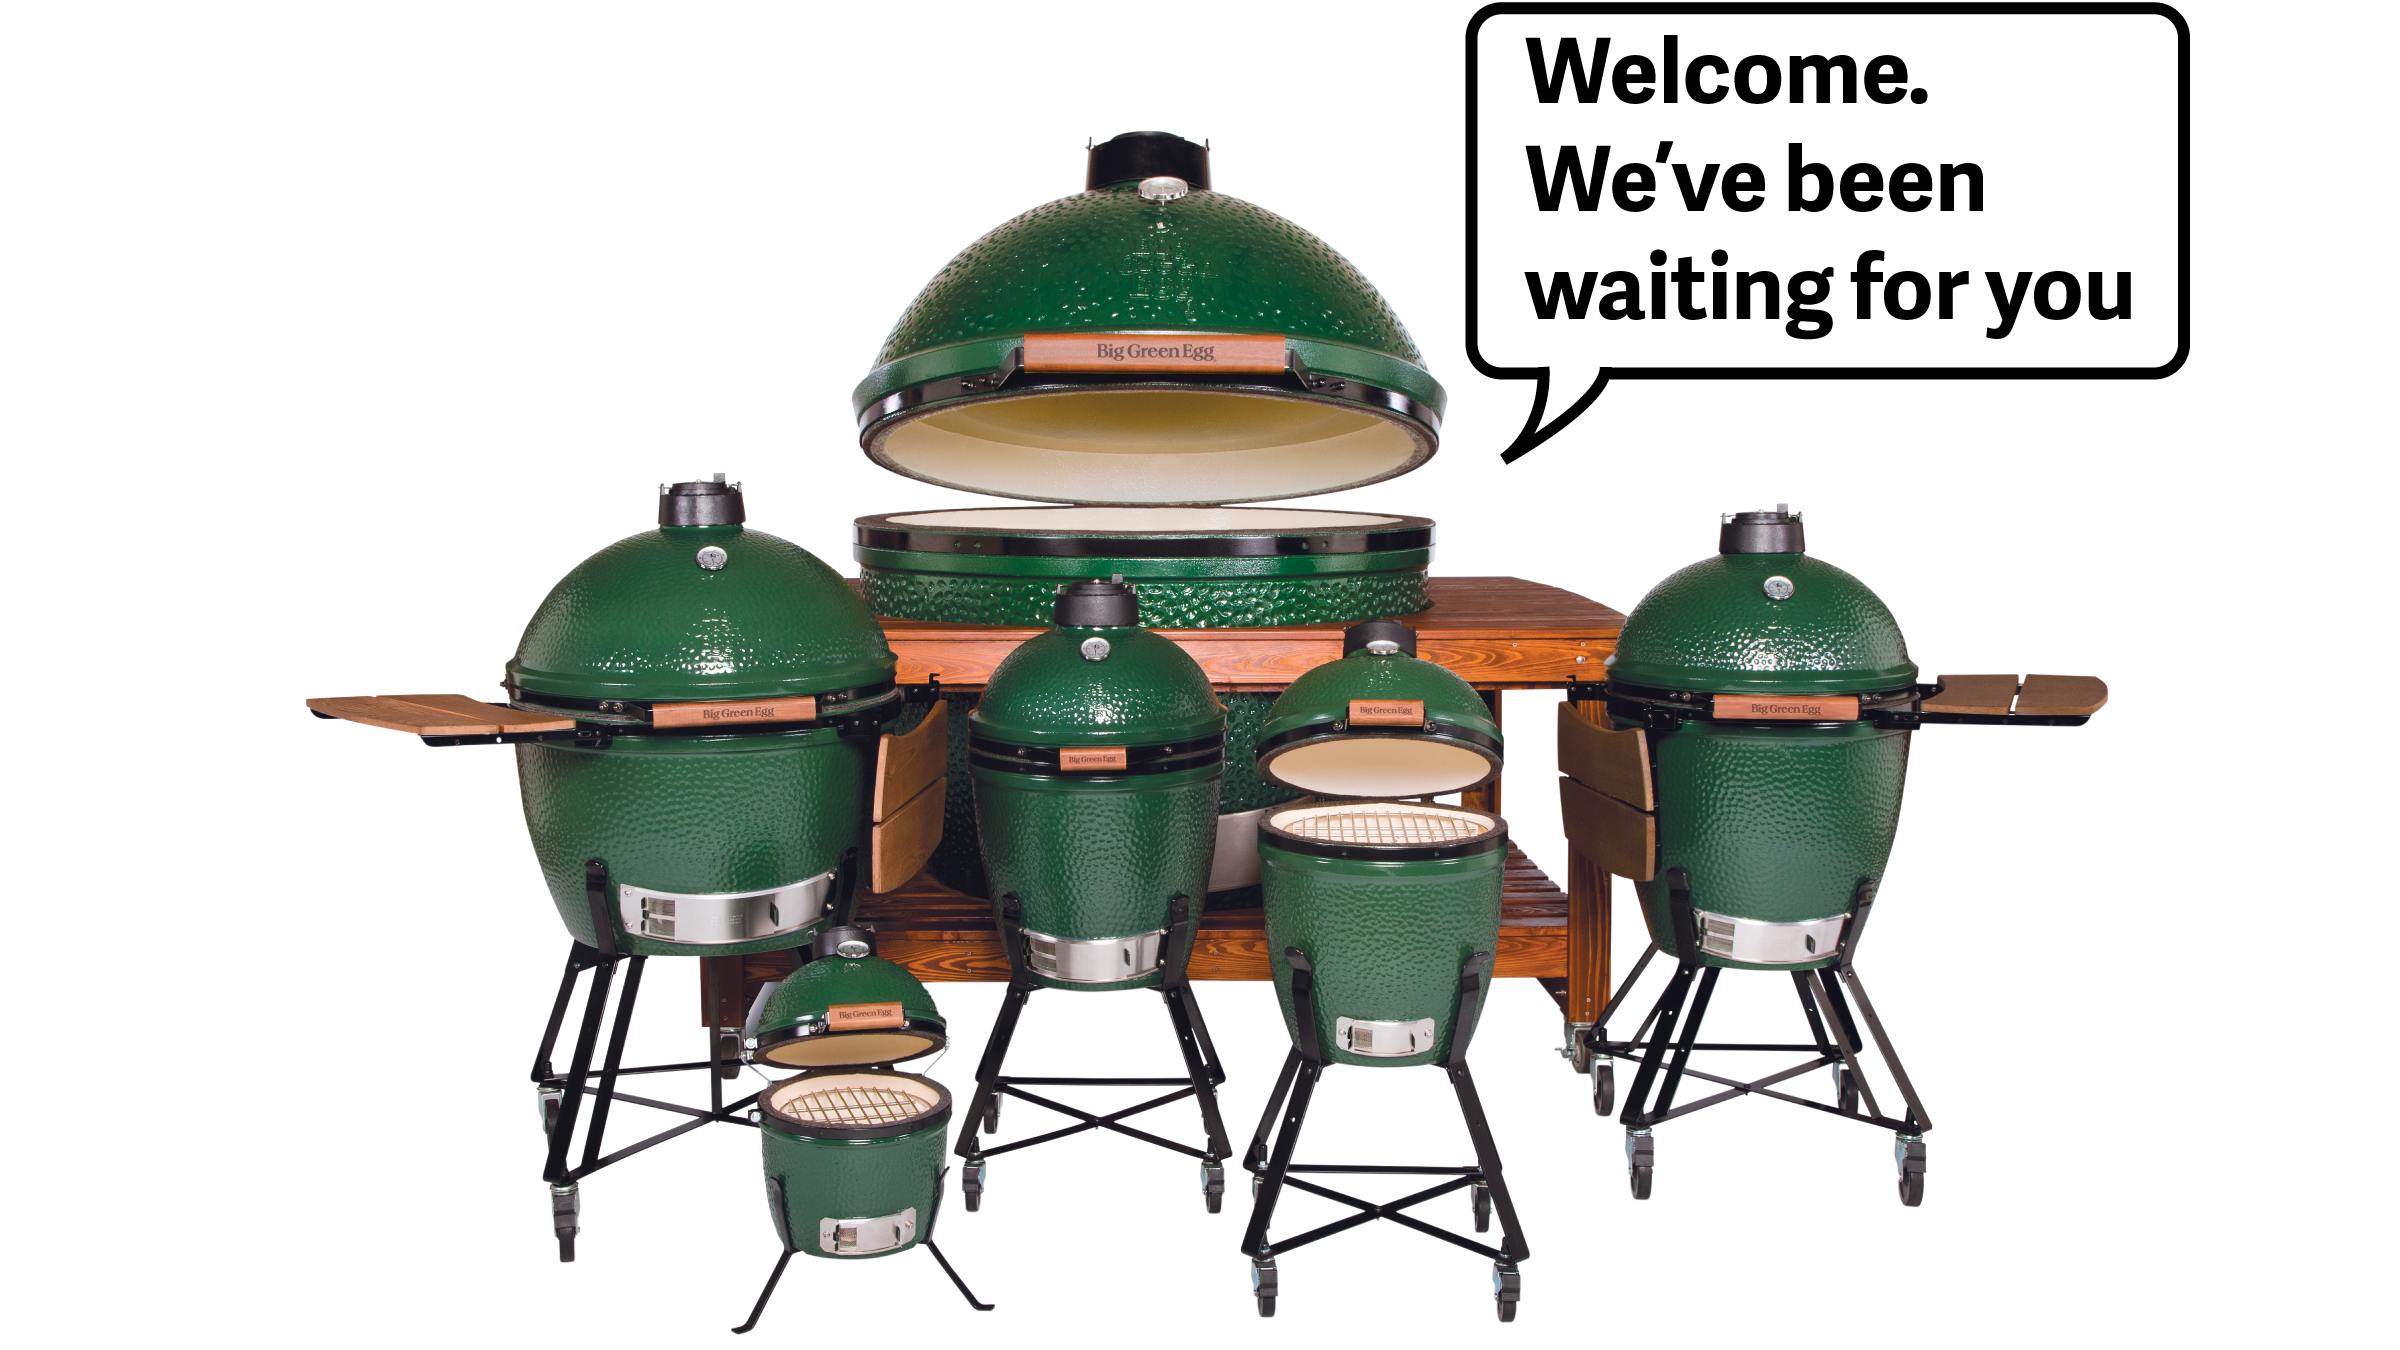 At The Altar Of The Big Green Egg How A Product Becomes A Cult Quartz